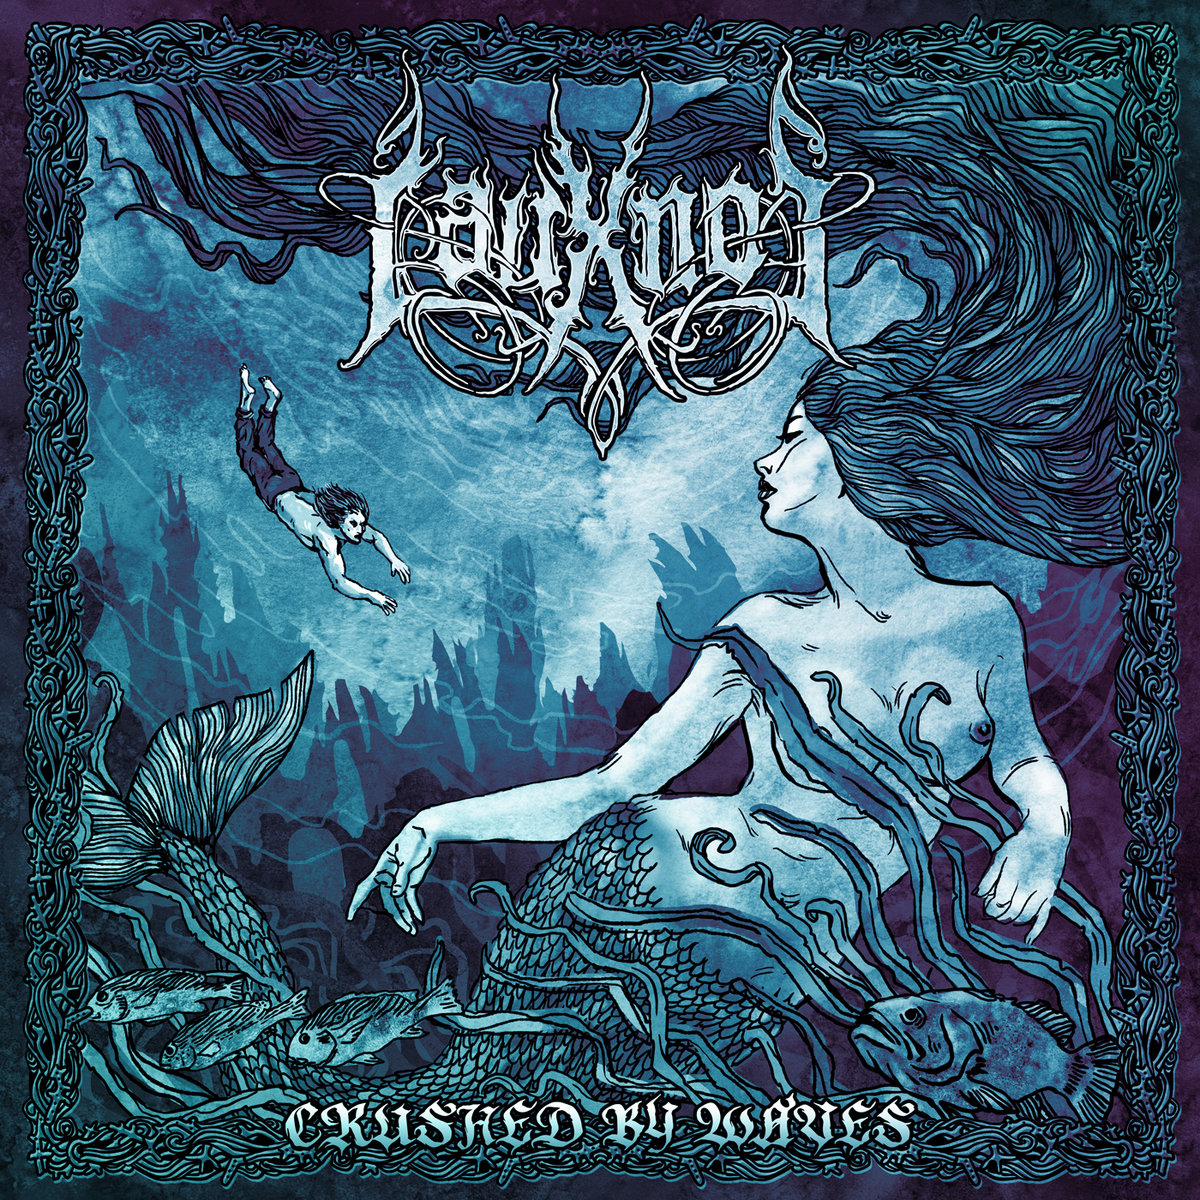 lauxnos crushed by waves post black metal russe le scribe du rock